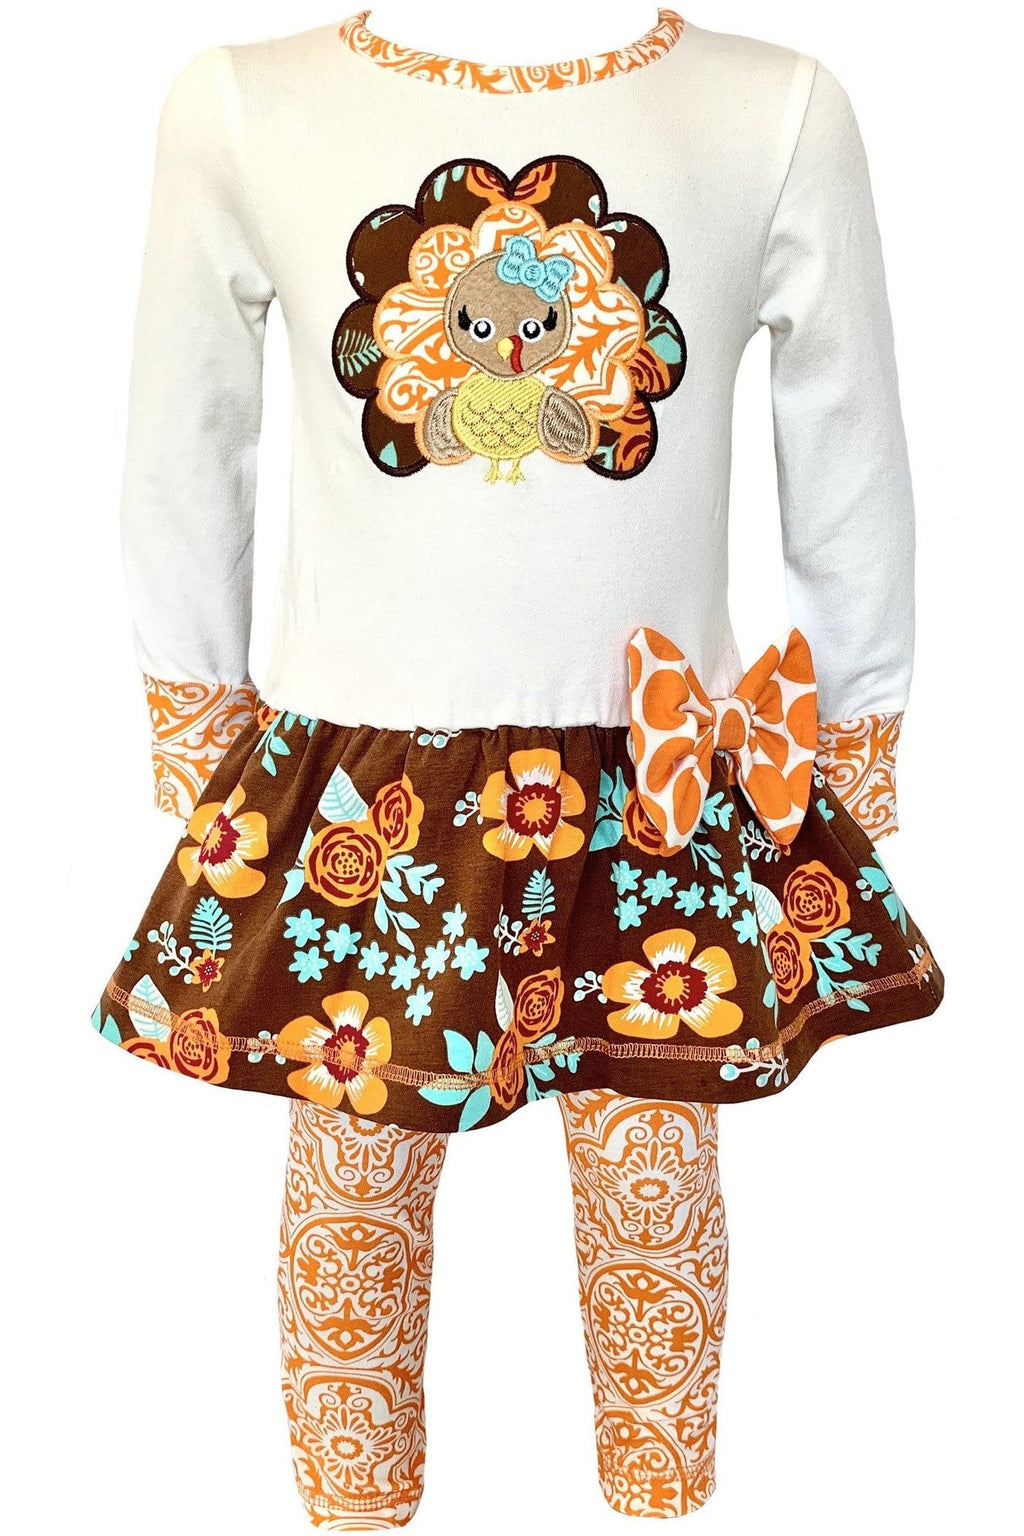 AnnLoren Big Little Girls Boutique Clothing Fall Outfit Floral Turkey Tunic & Leggings sz 2/3T-9/10 - Himelhoch's